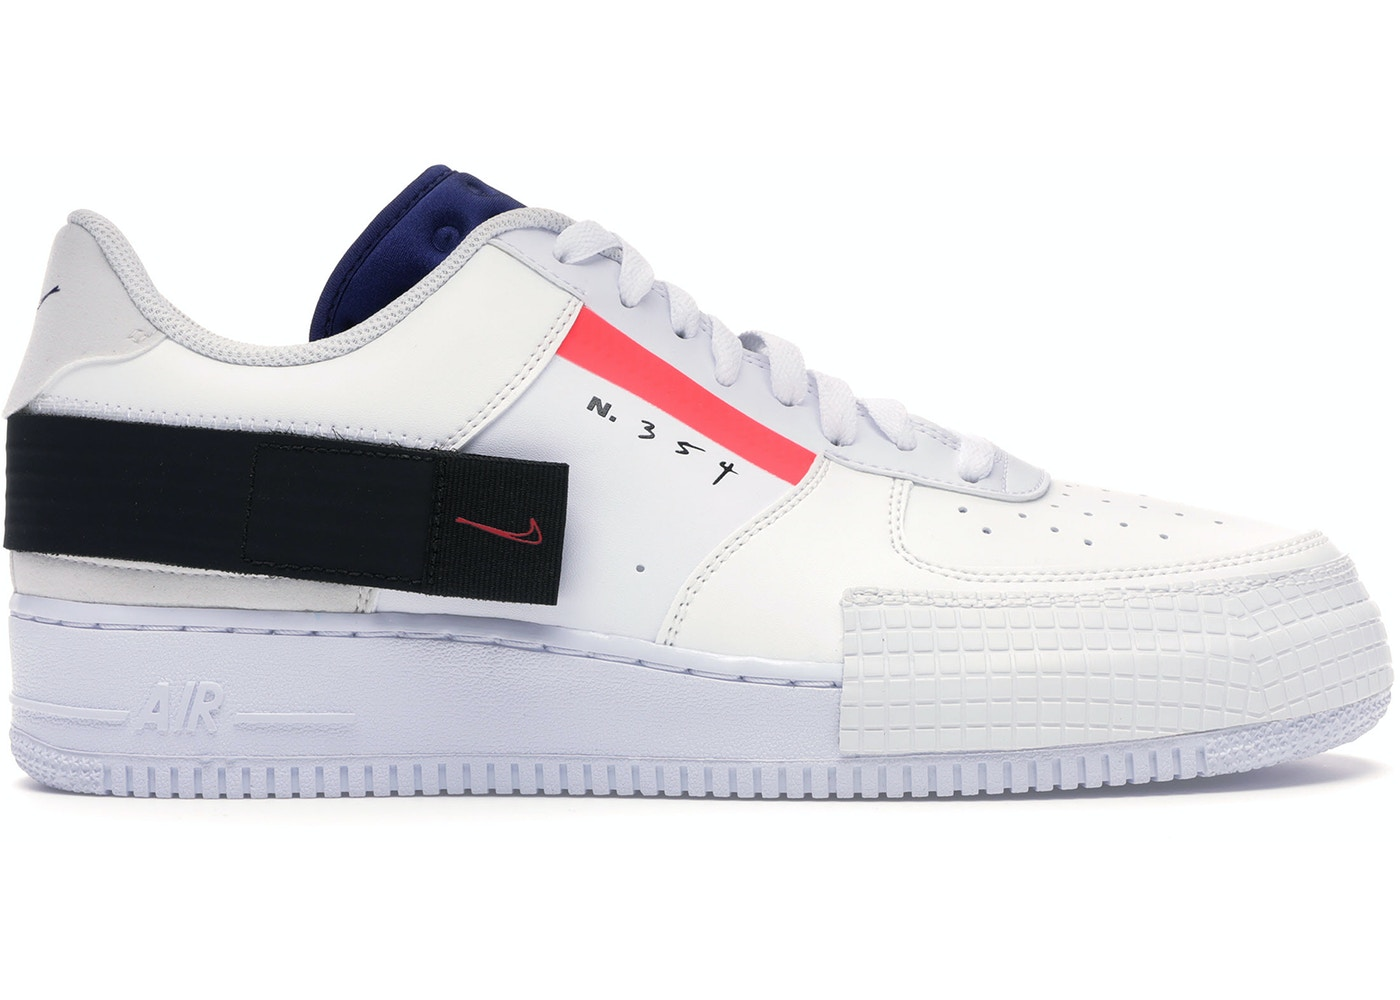 latest discount huge selection of great quality Air Force 1 Type